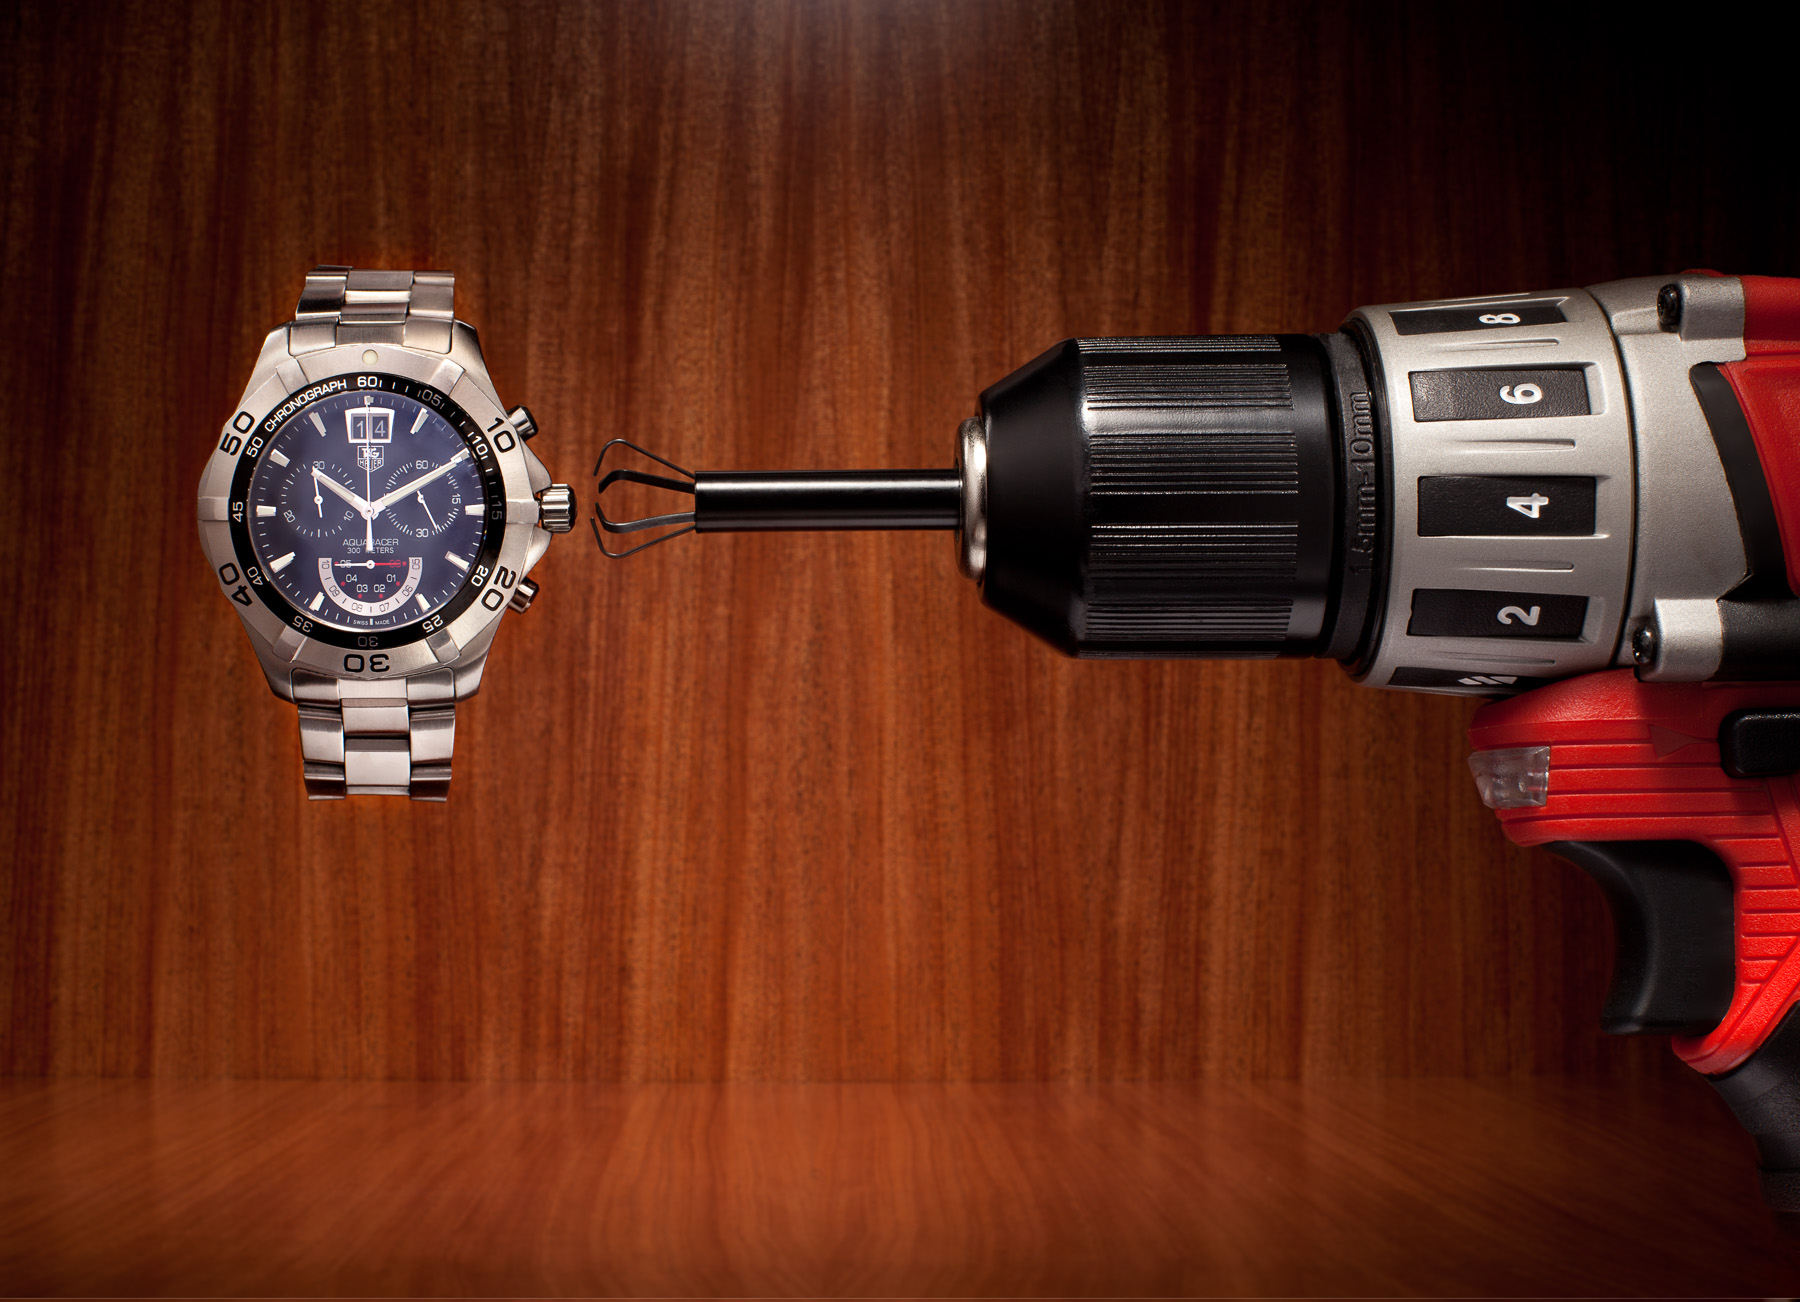 I imagine that having to wind a watch would eventually become a chore.